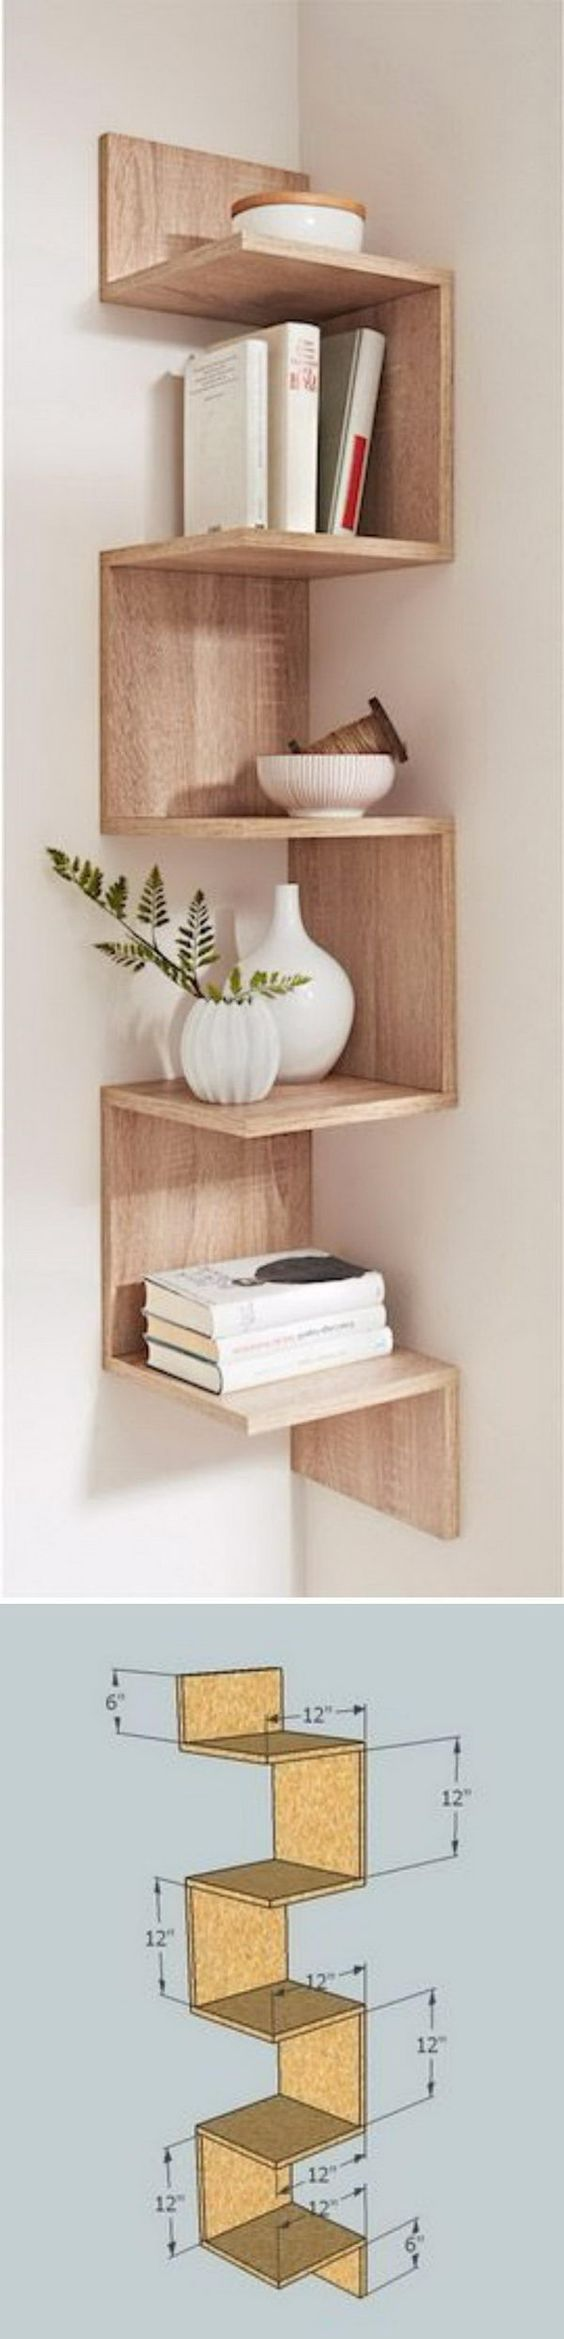 20  DIY Corner Shelves to Beautify Your Awkward Corner. Best 25  Shelf ideas ideas on Pinterest   Easy shelves  Diy